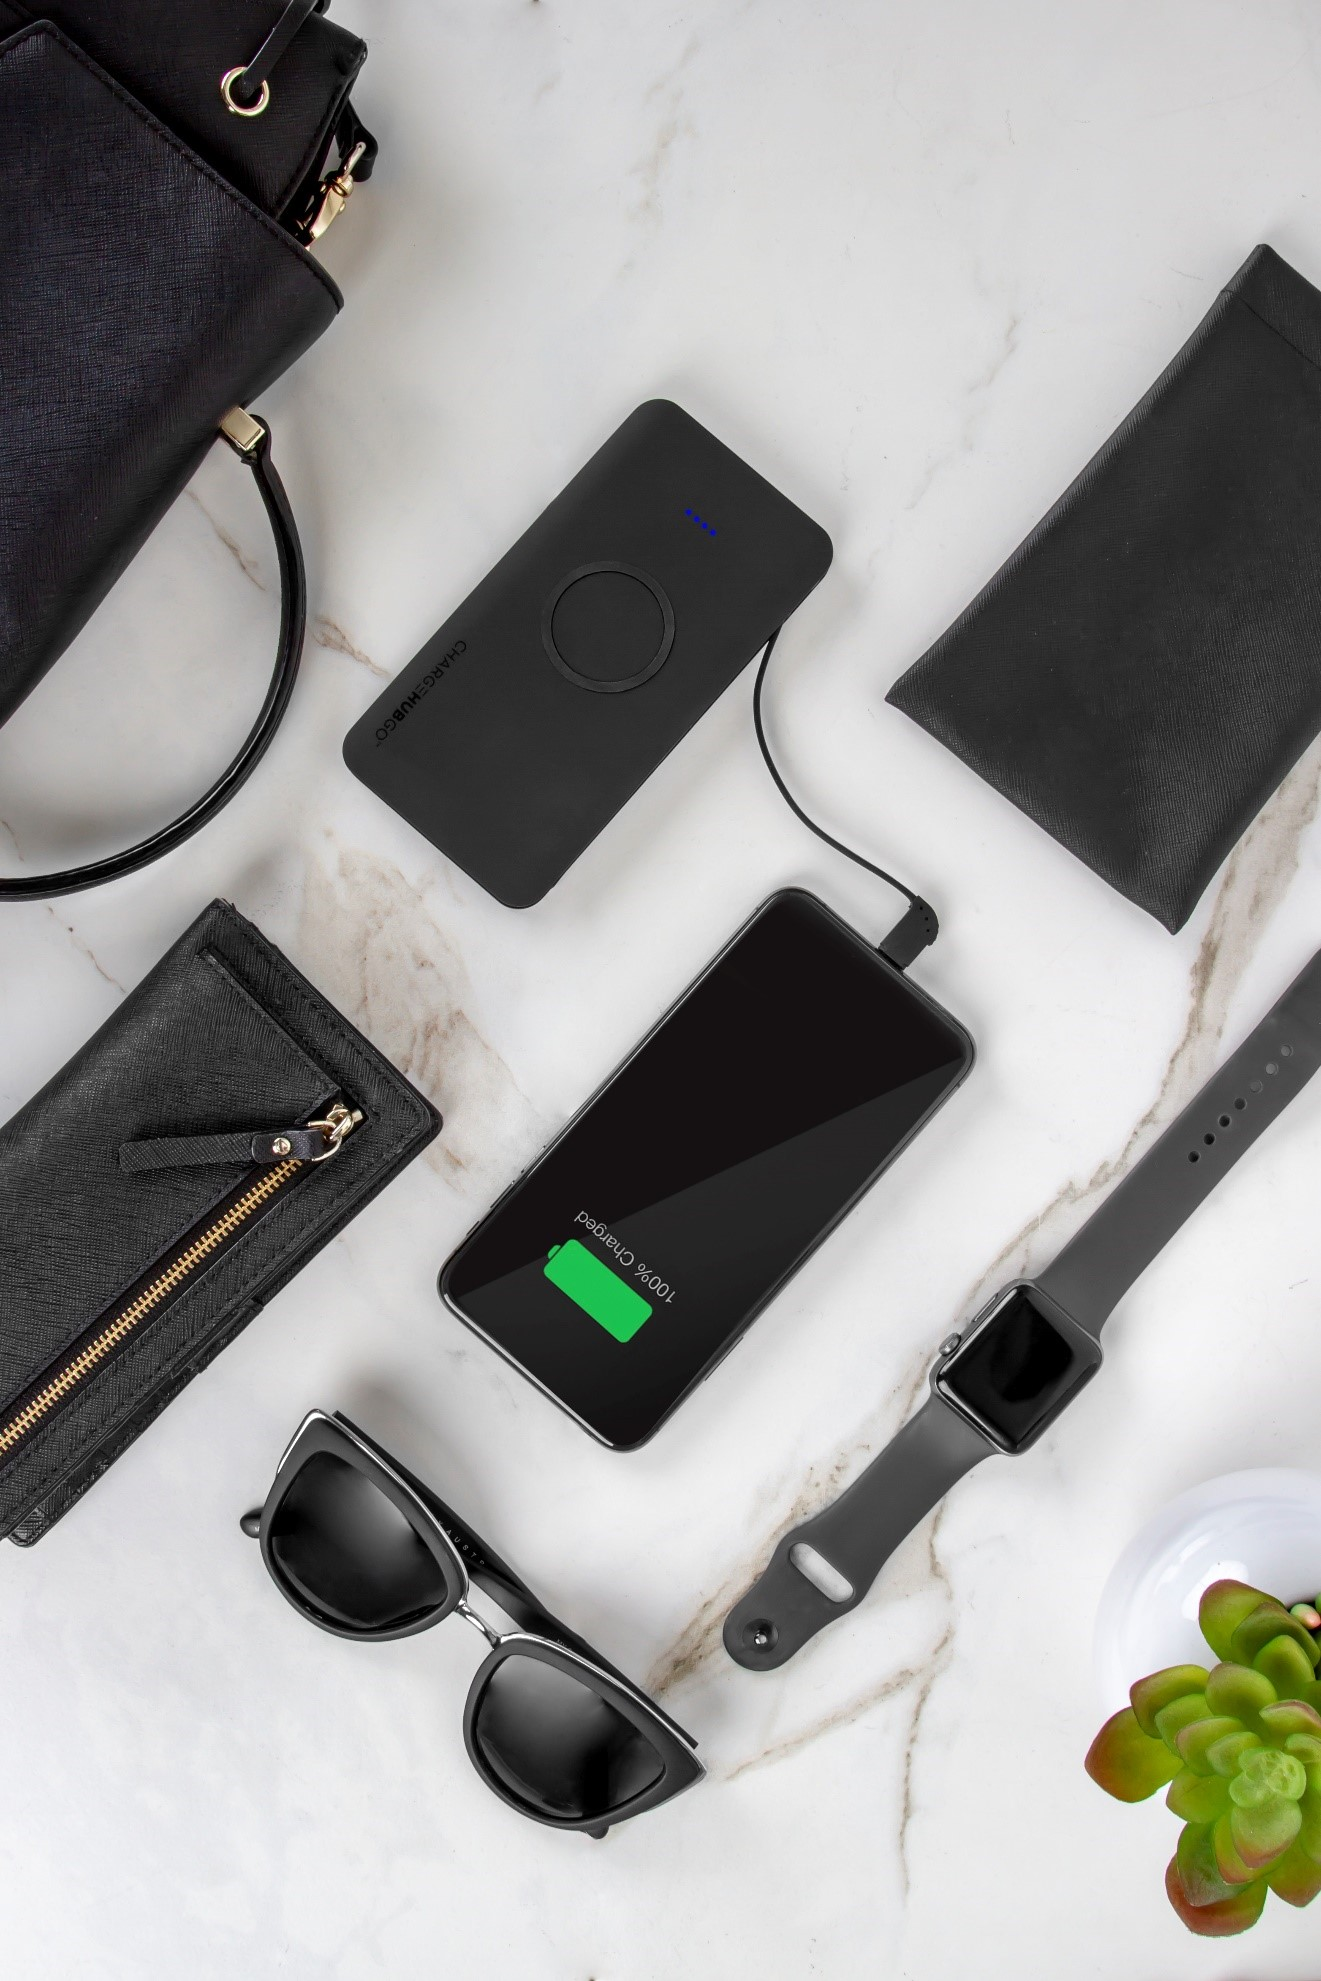 ChargeHubGo+ Review [2021] - Portable Ultra Slim Wireless Charging Solution 4